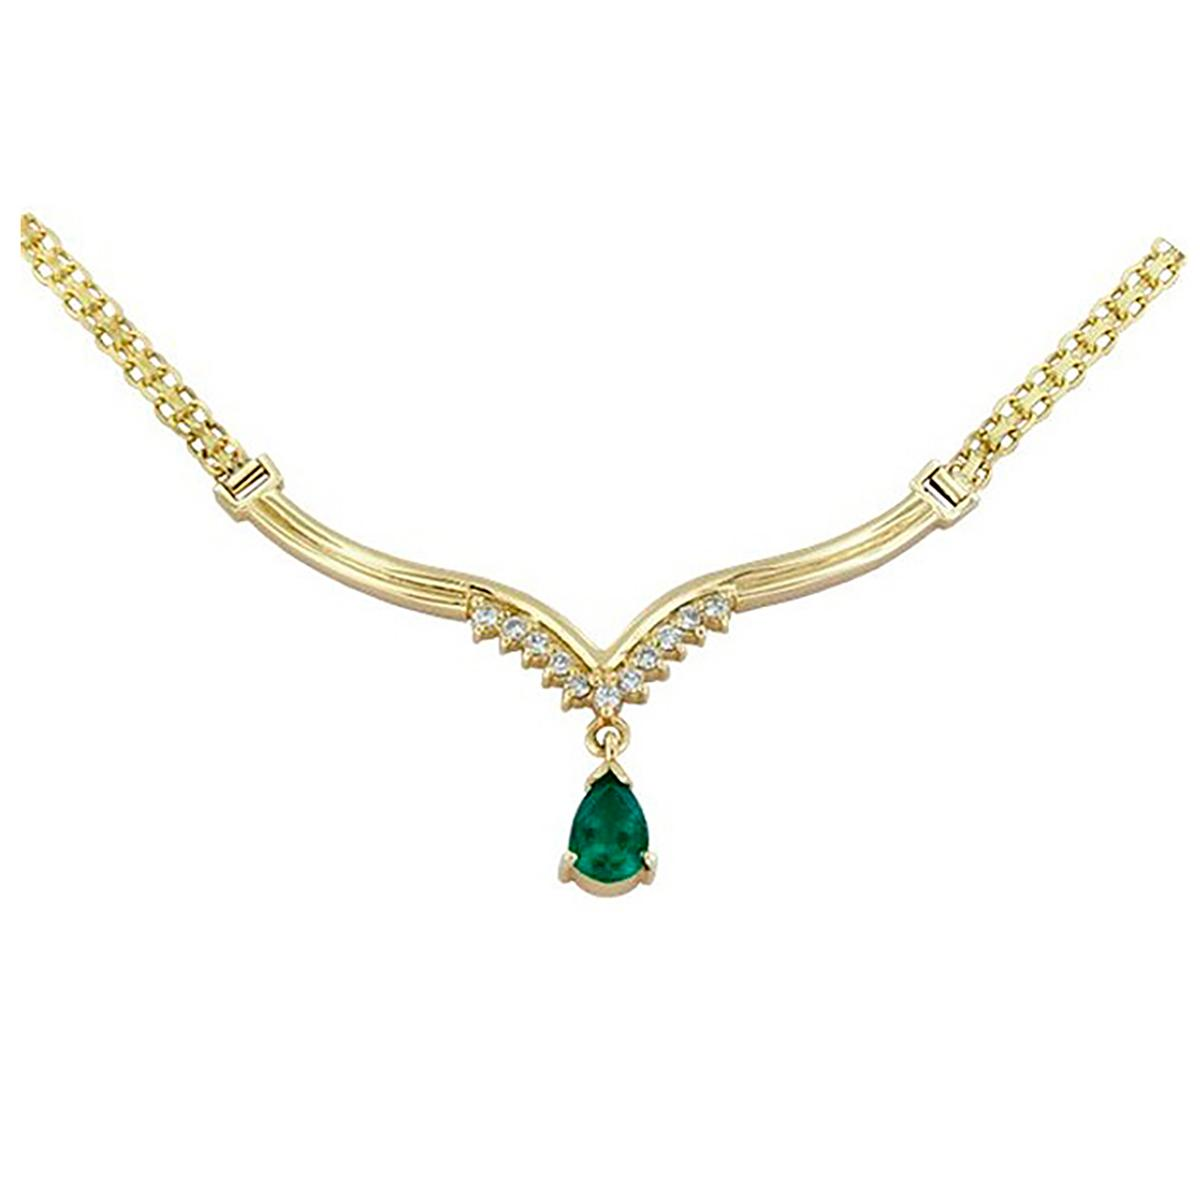 18k-yellow-gold-emerald-and-diamond-necklace-antique-style